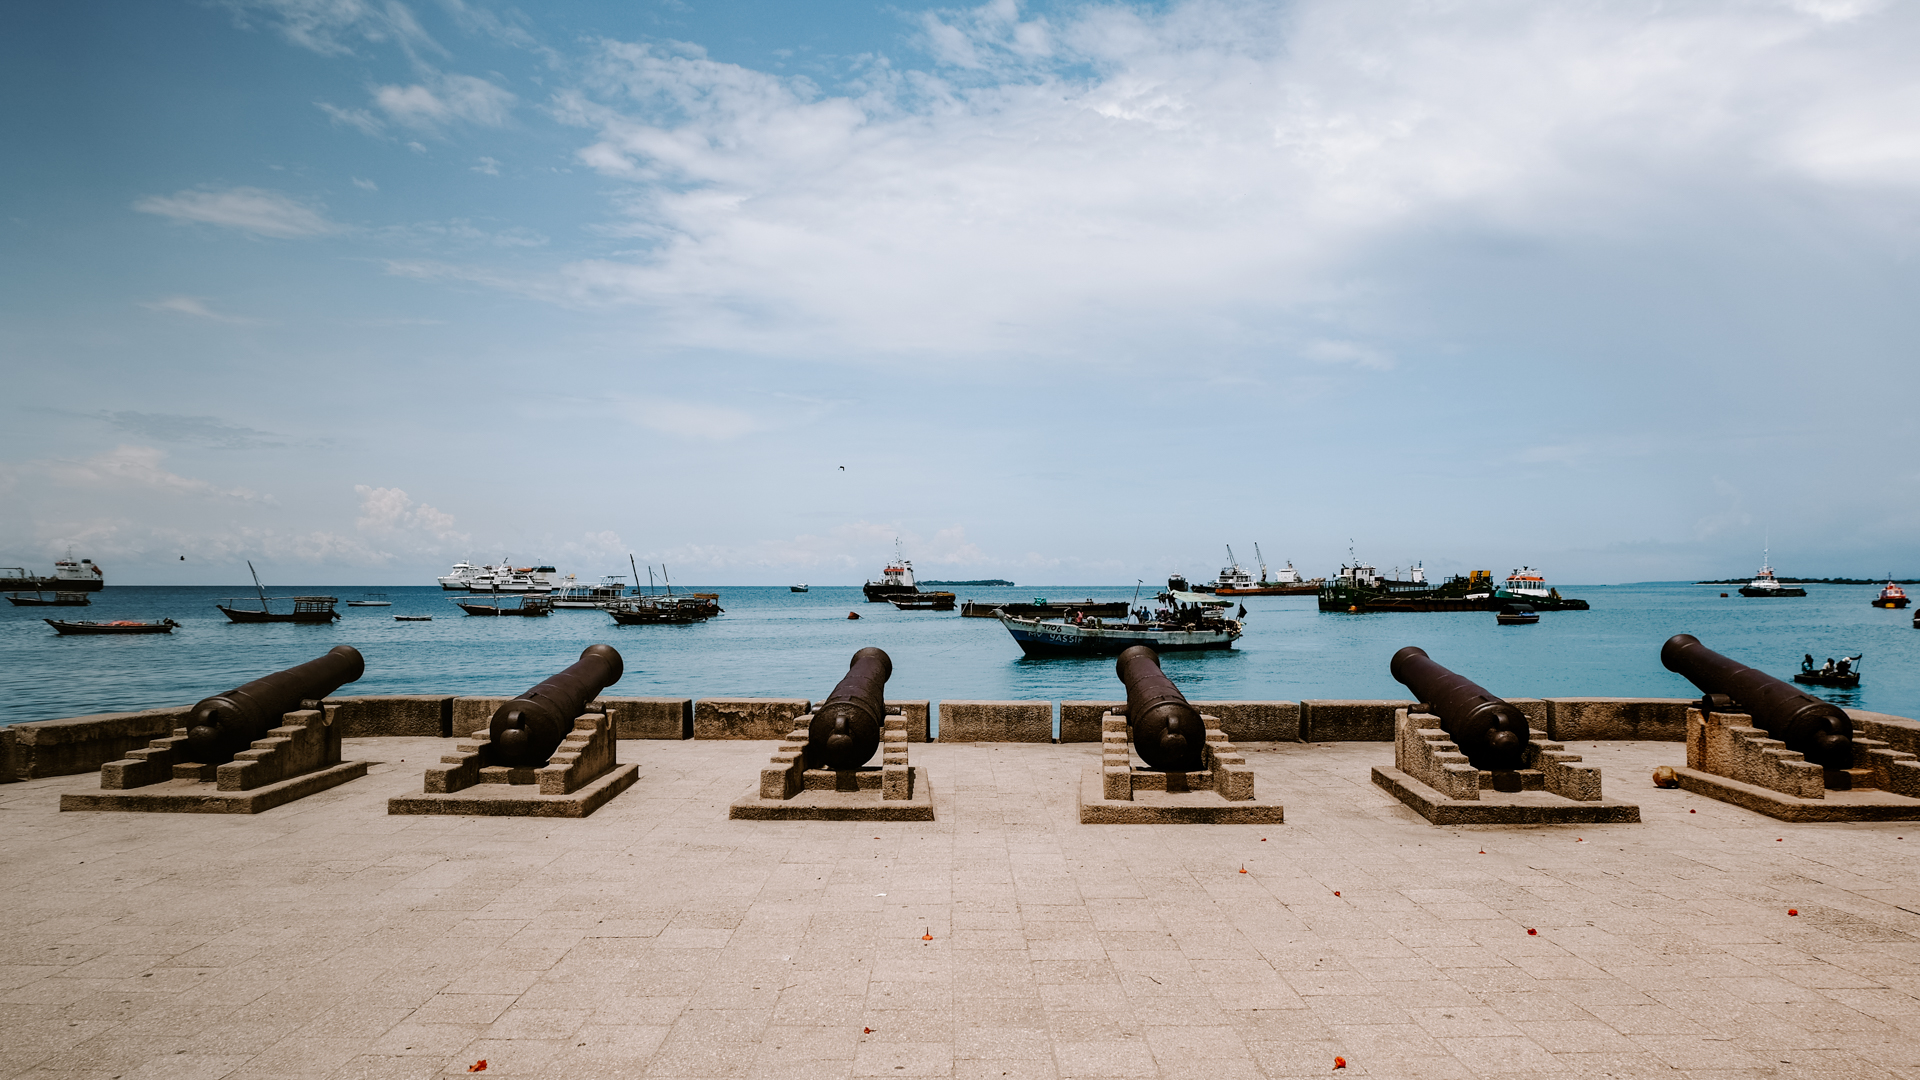 Old cannons at the waterfront of Stone Town in Zanzibar, Tanzania